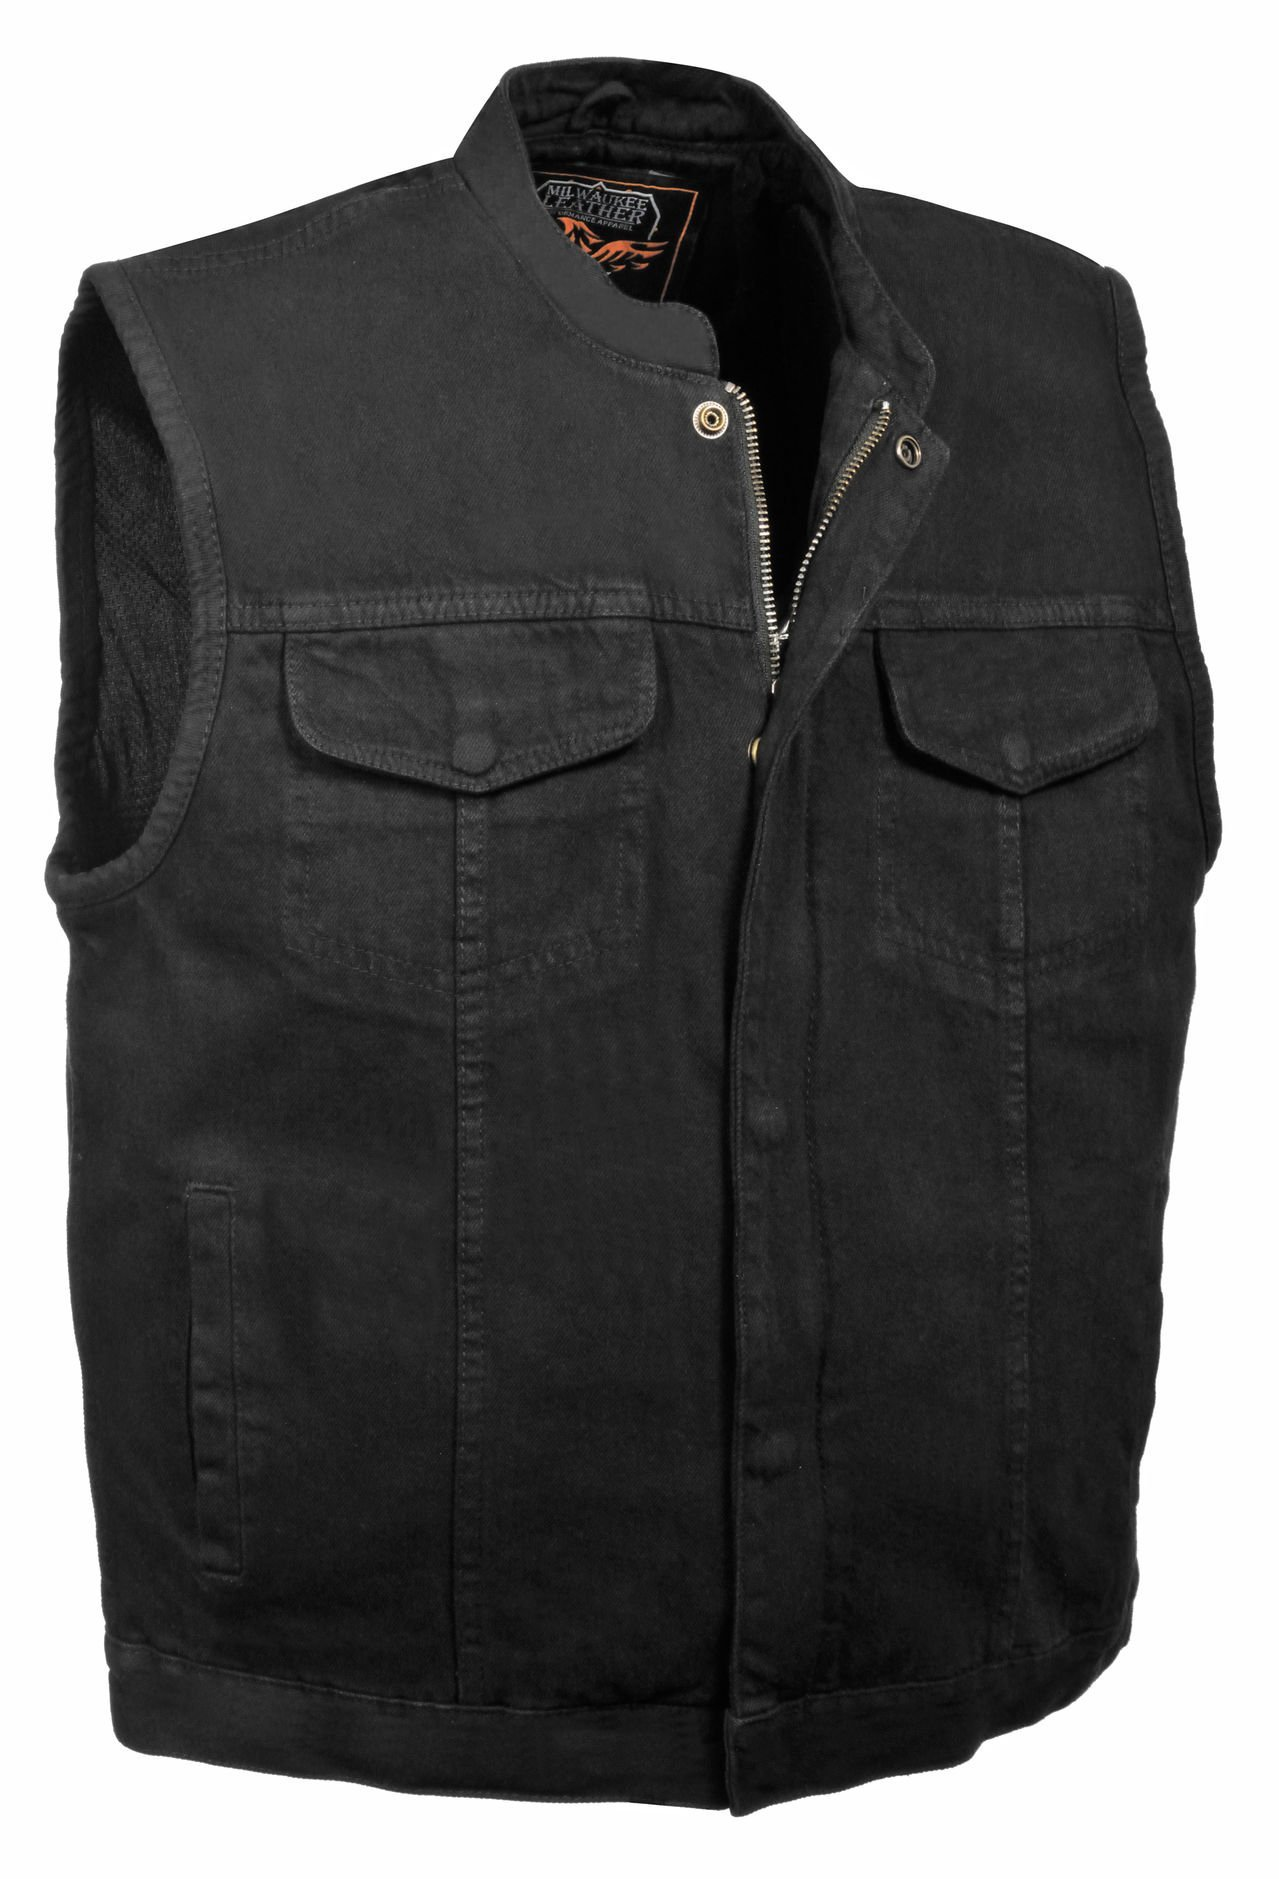 Milwaukee Leather Men's Concealed Snap Denim Club Style Vest w/Hidden Zipper (Black, 3X) by Milwaukee Leather